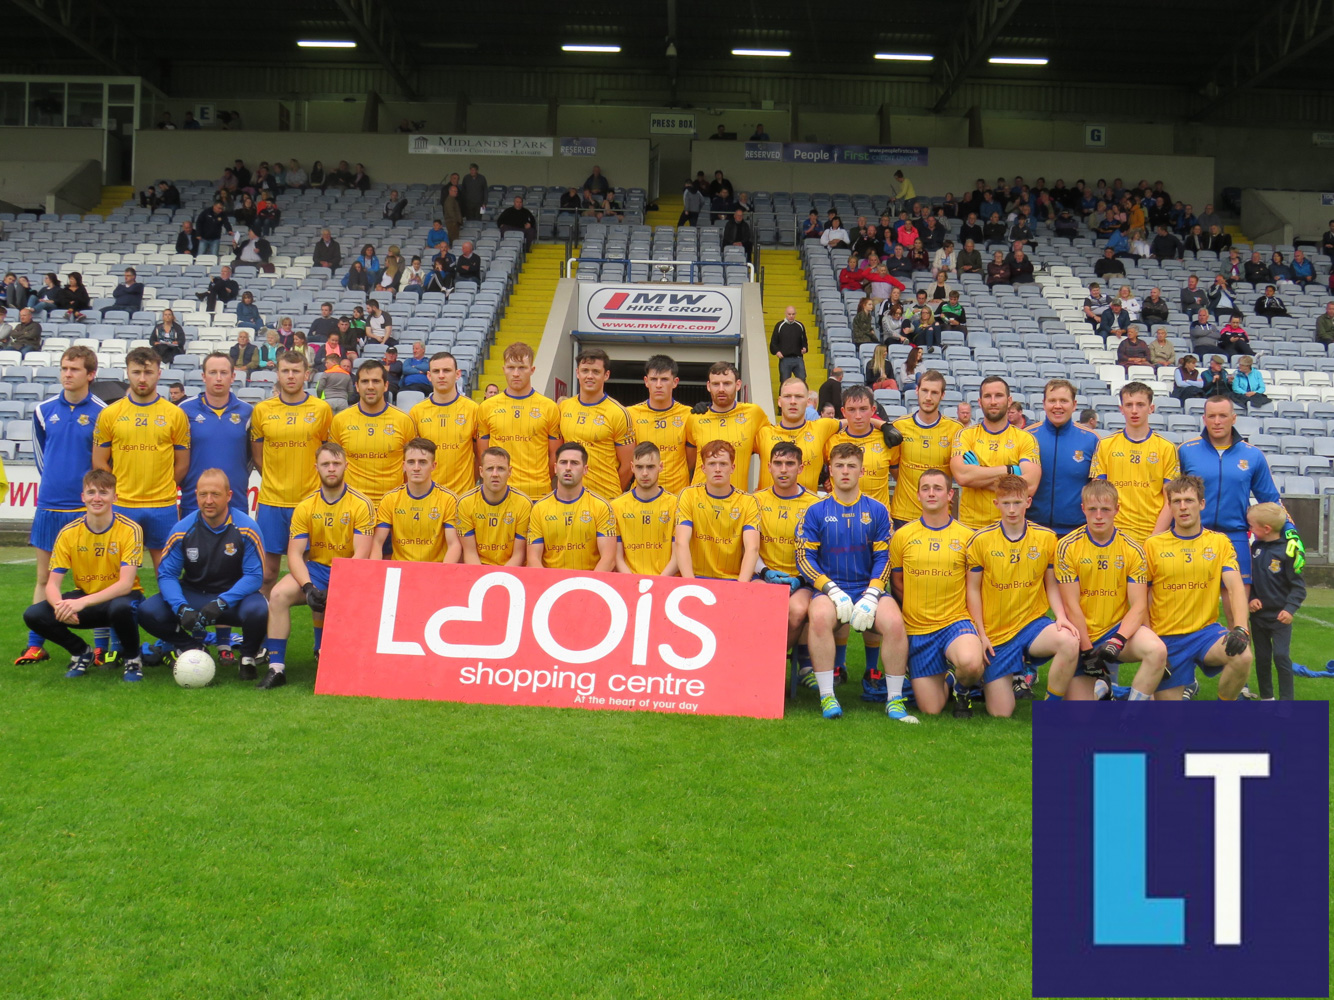 The St Joseph's team who played O'Dempsey's this evening